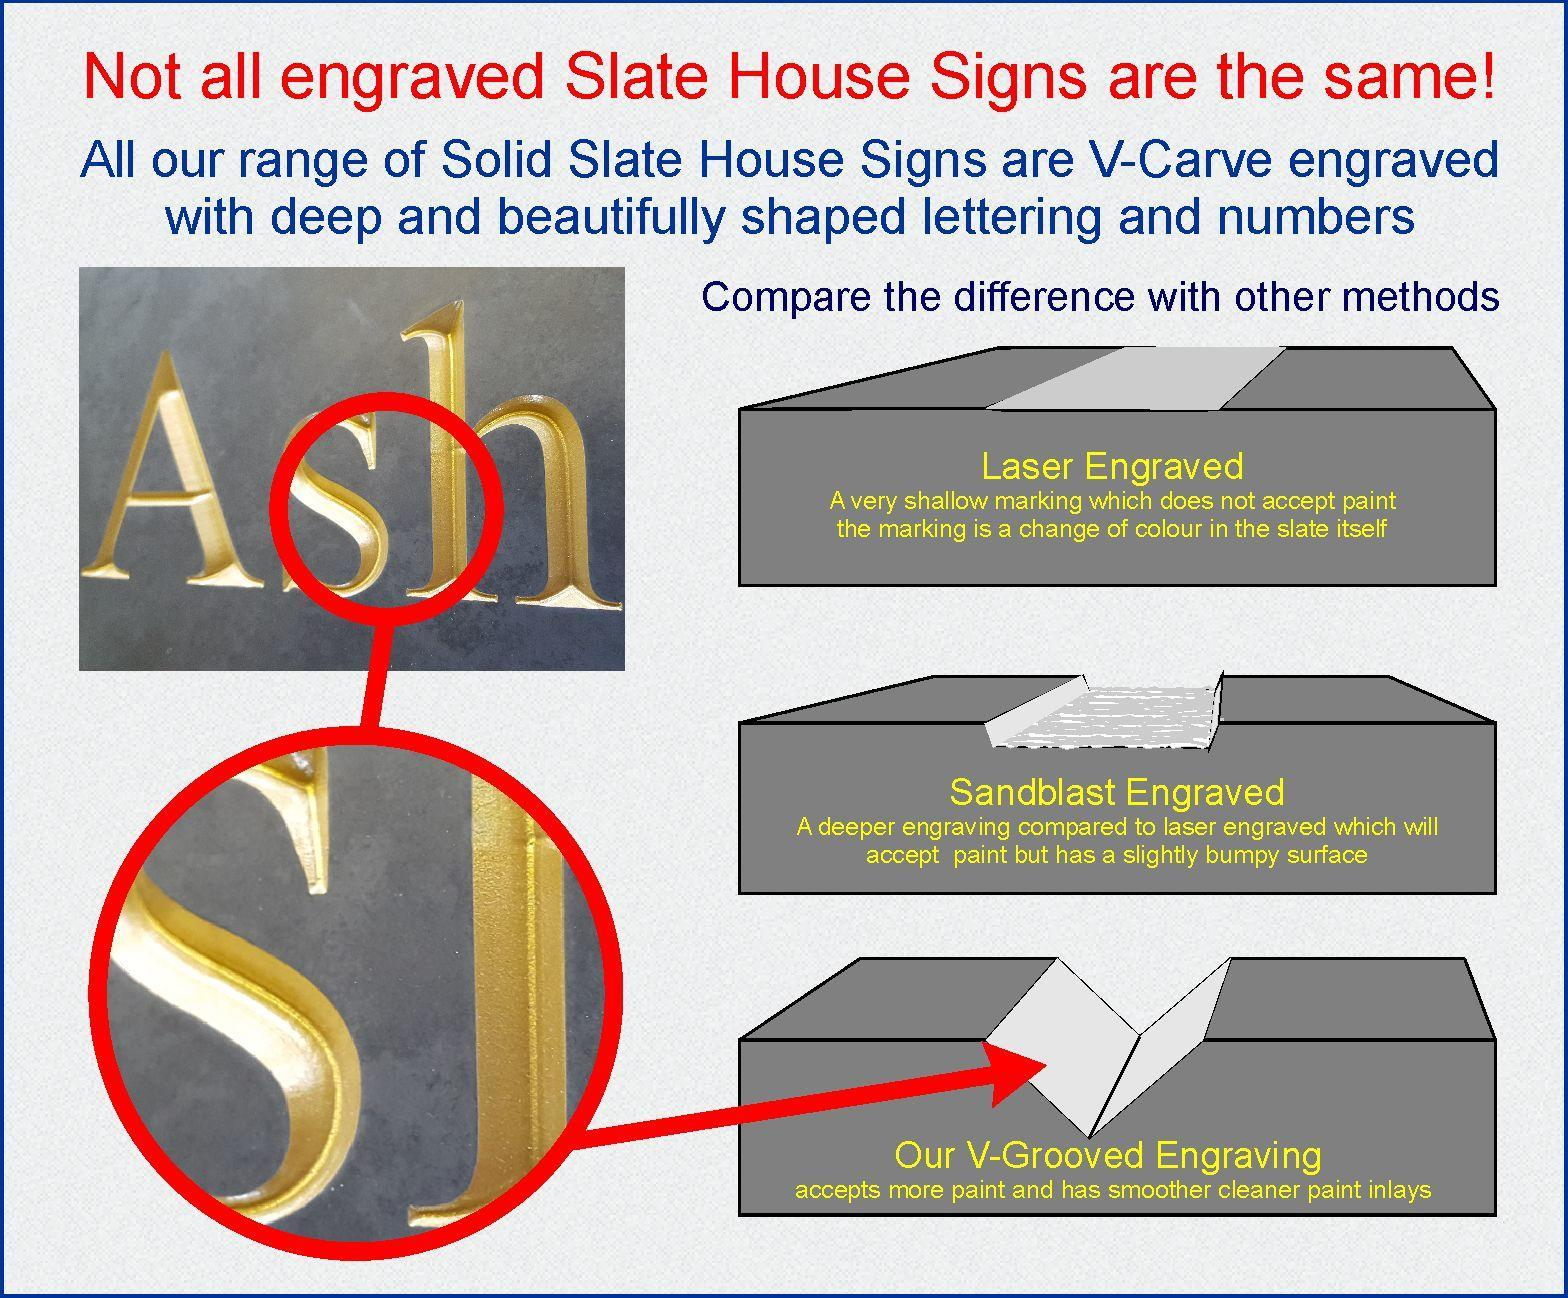 Diagram illustrating beautiful v-groove engraved house signs